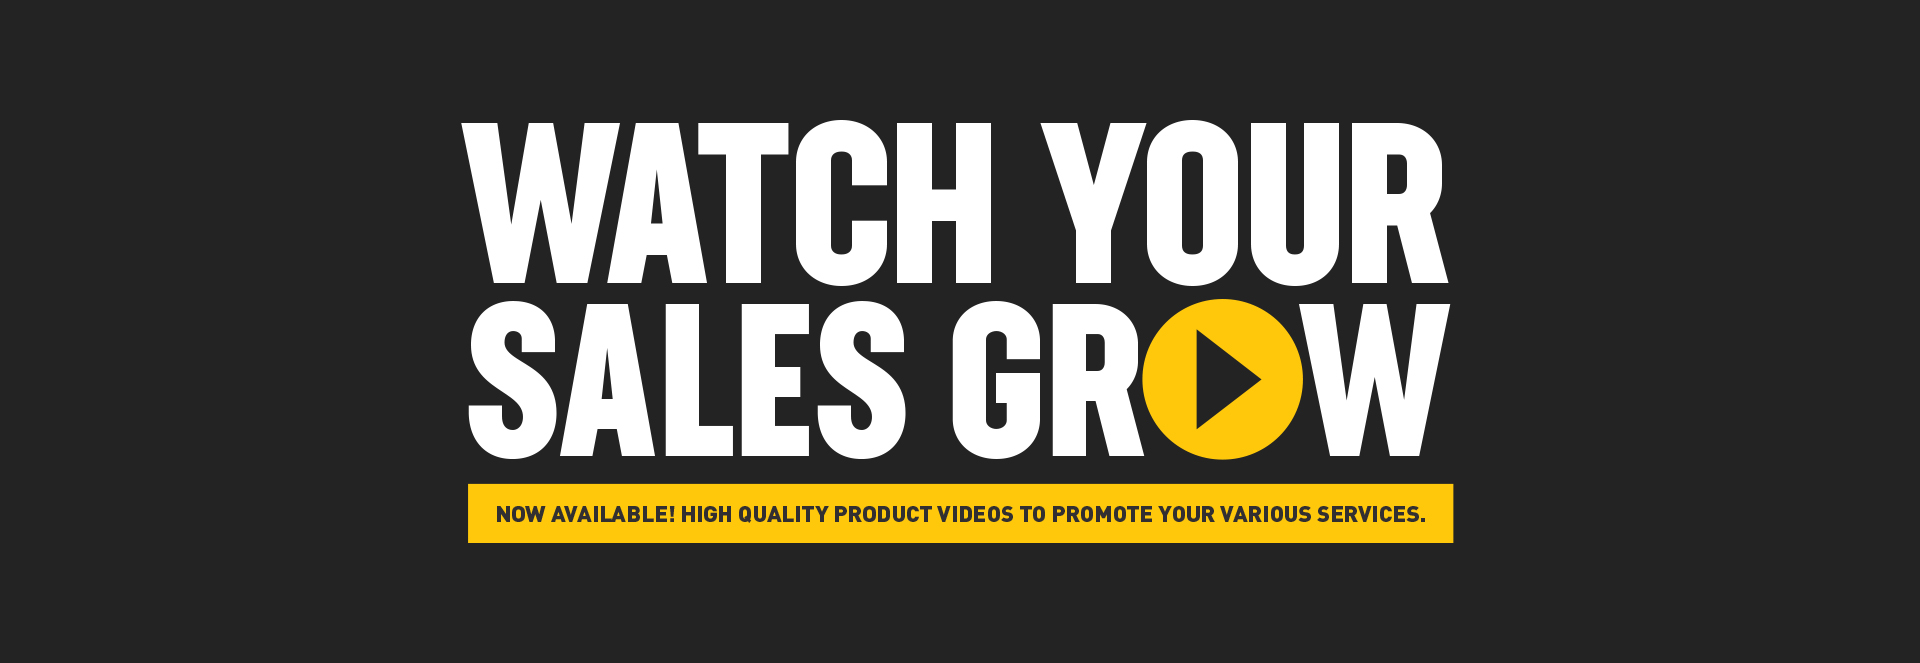 Watch Your Sales Grow Video Marketing Program